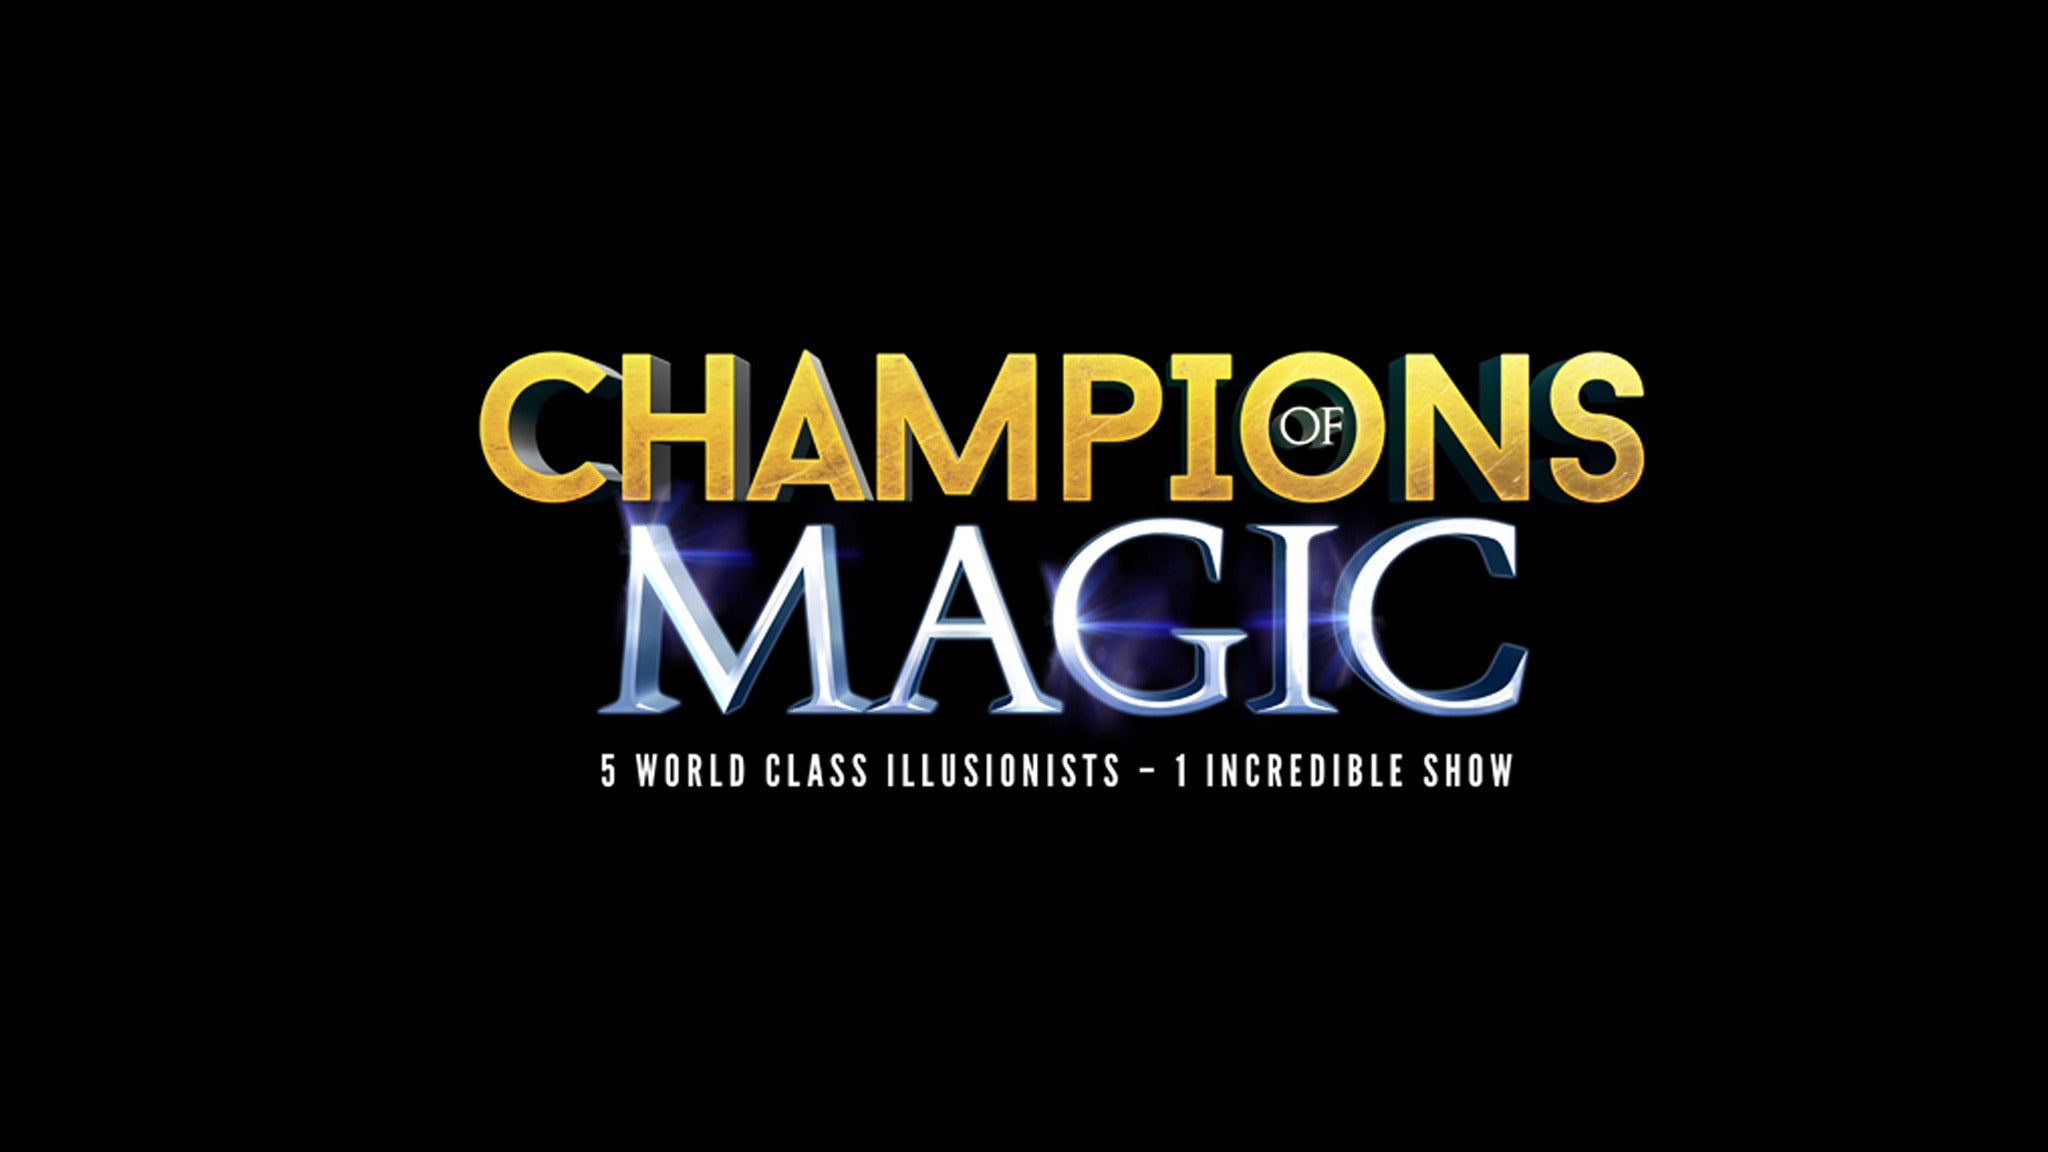 Champions of Magic at State Theatre